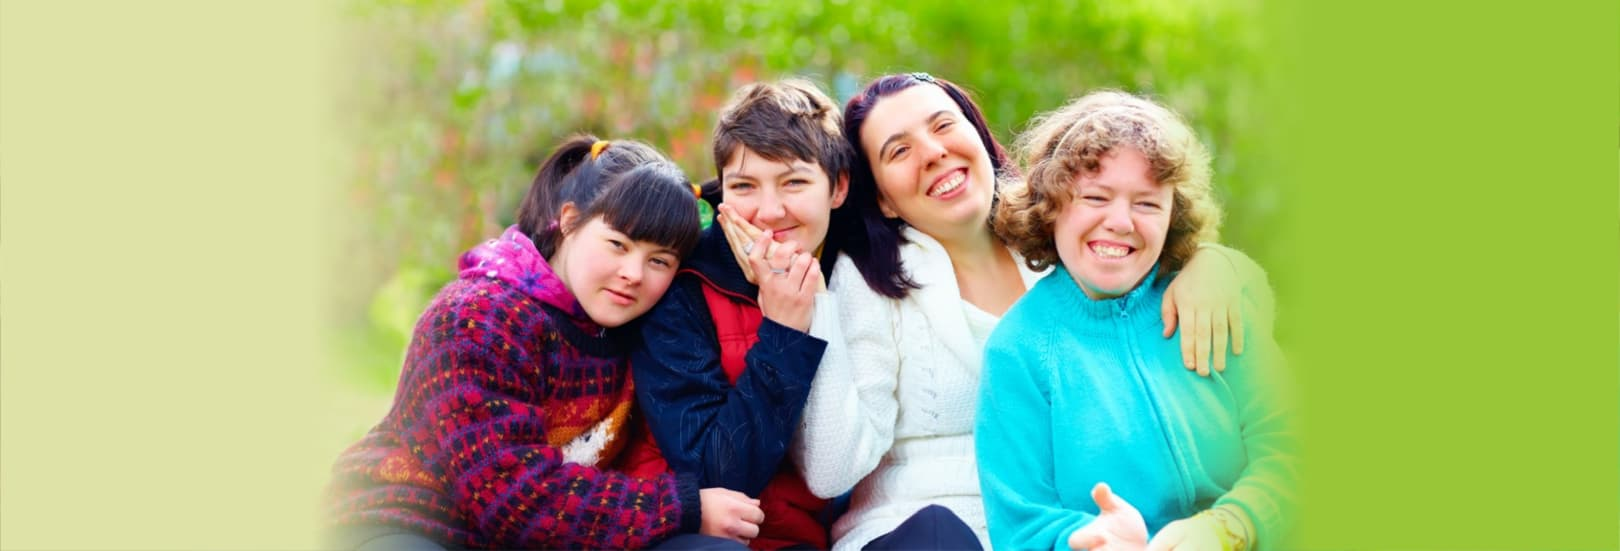 Portrait of happy women with disability having fun in spring park